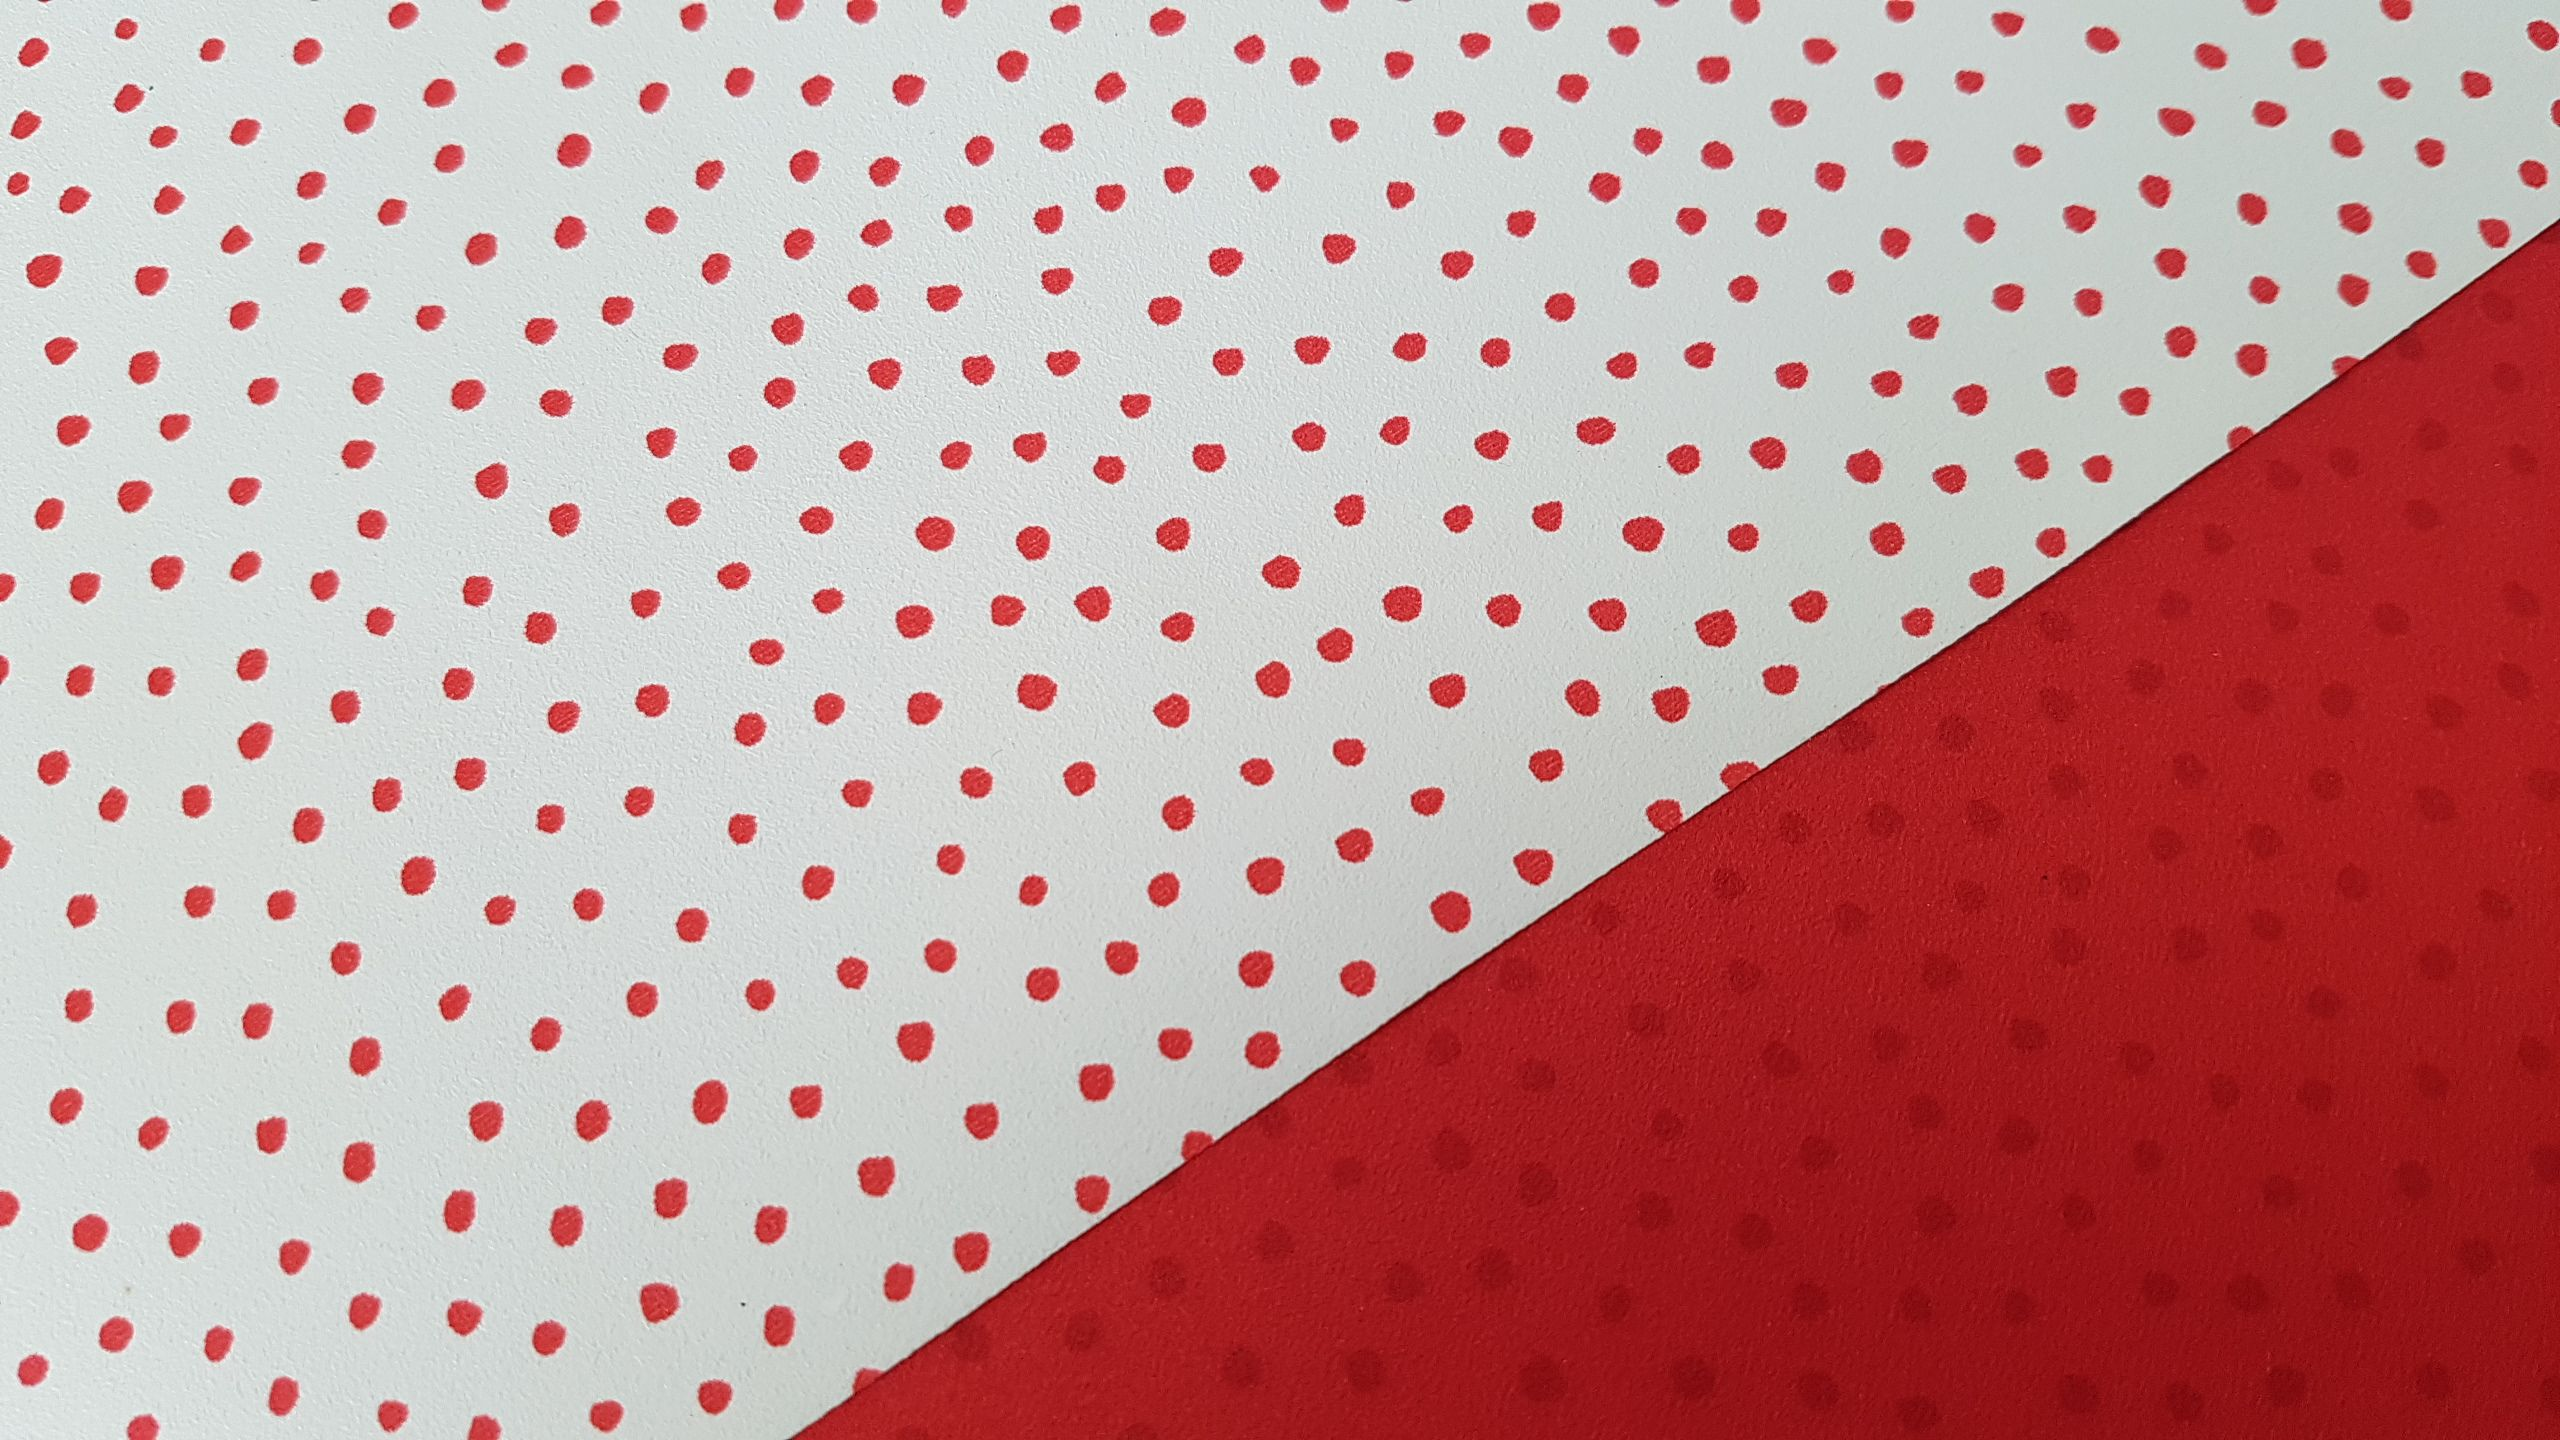 Can you spot me Red and white polka dots wallpaper by Marimekko